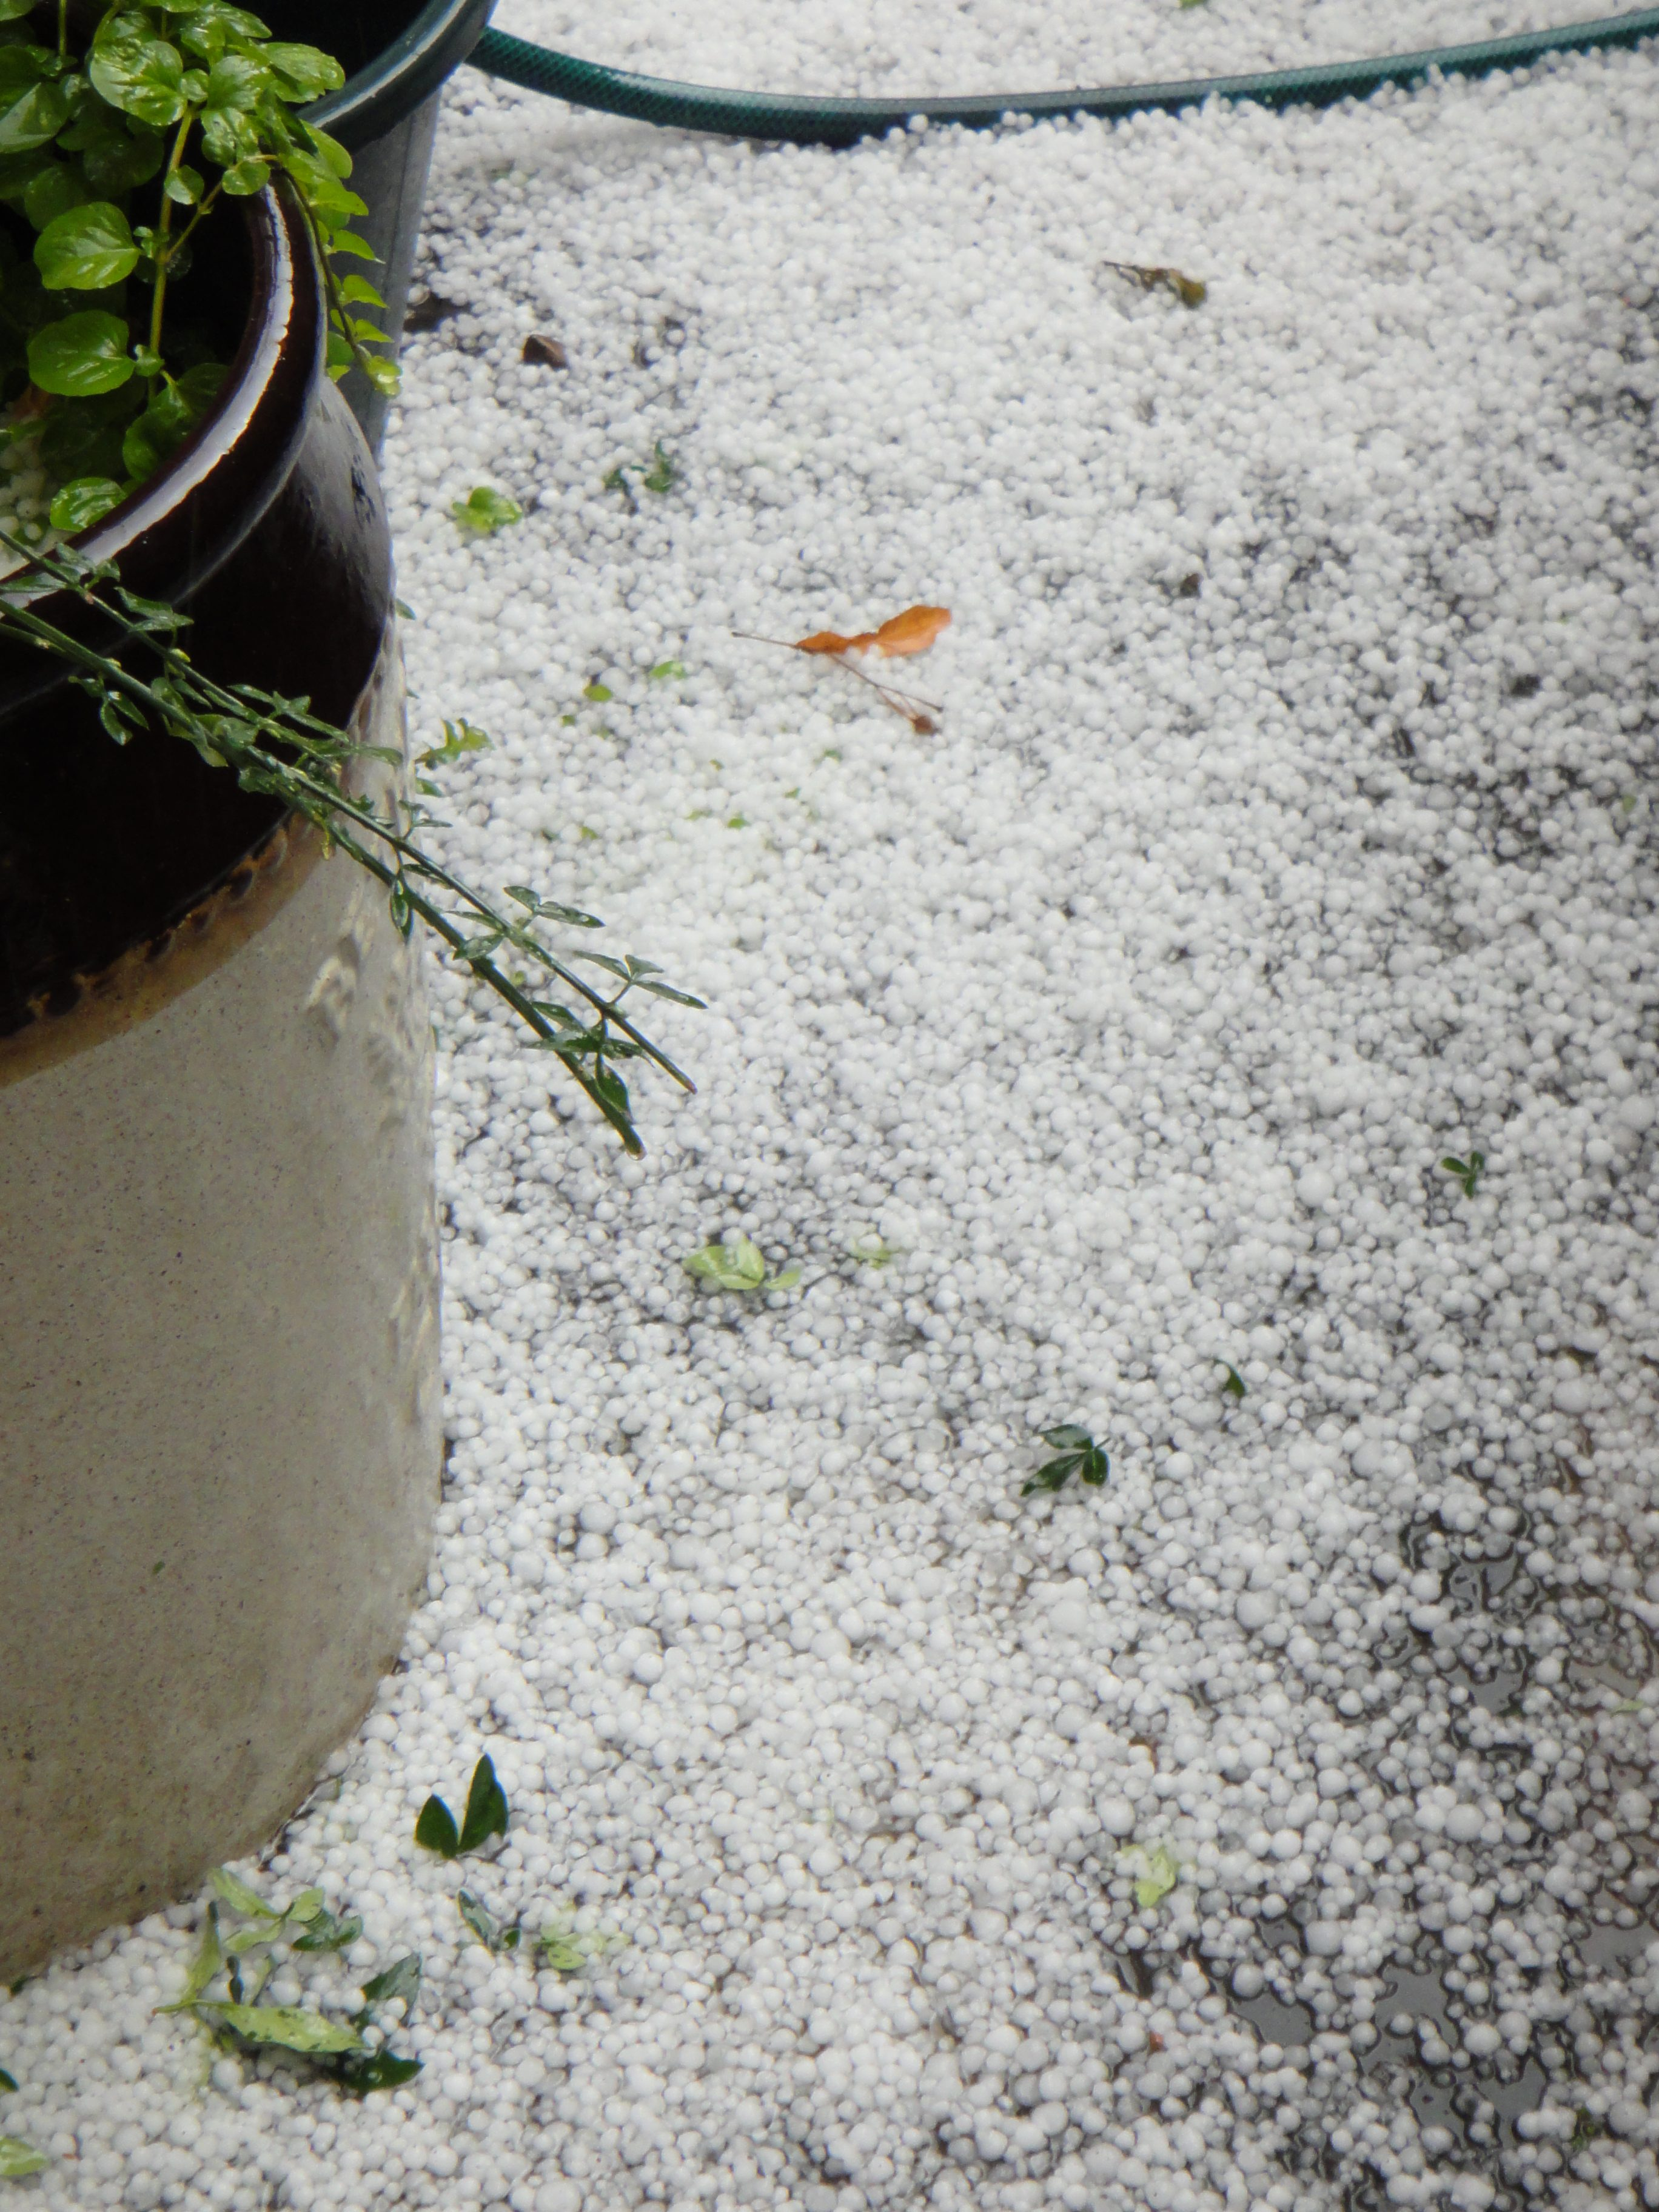 hail on ground by French window